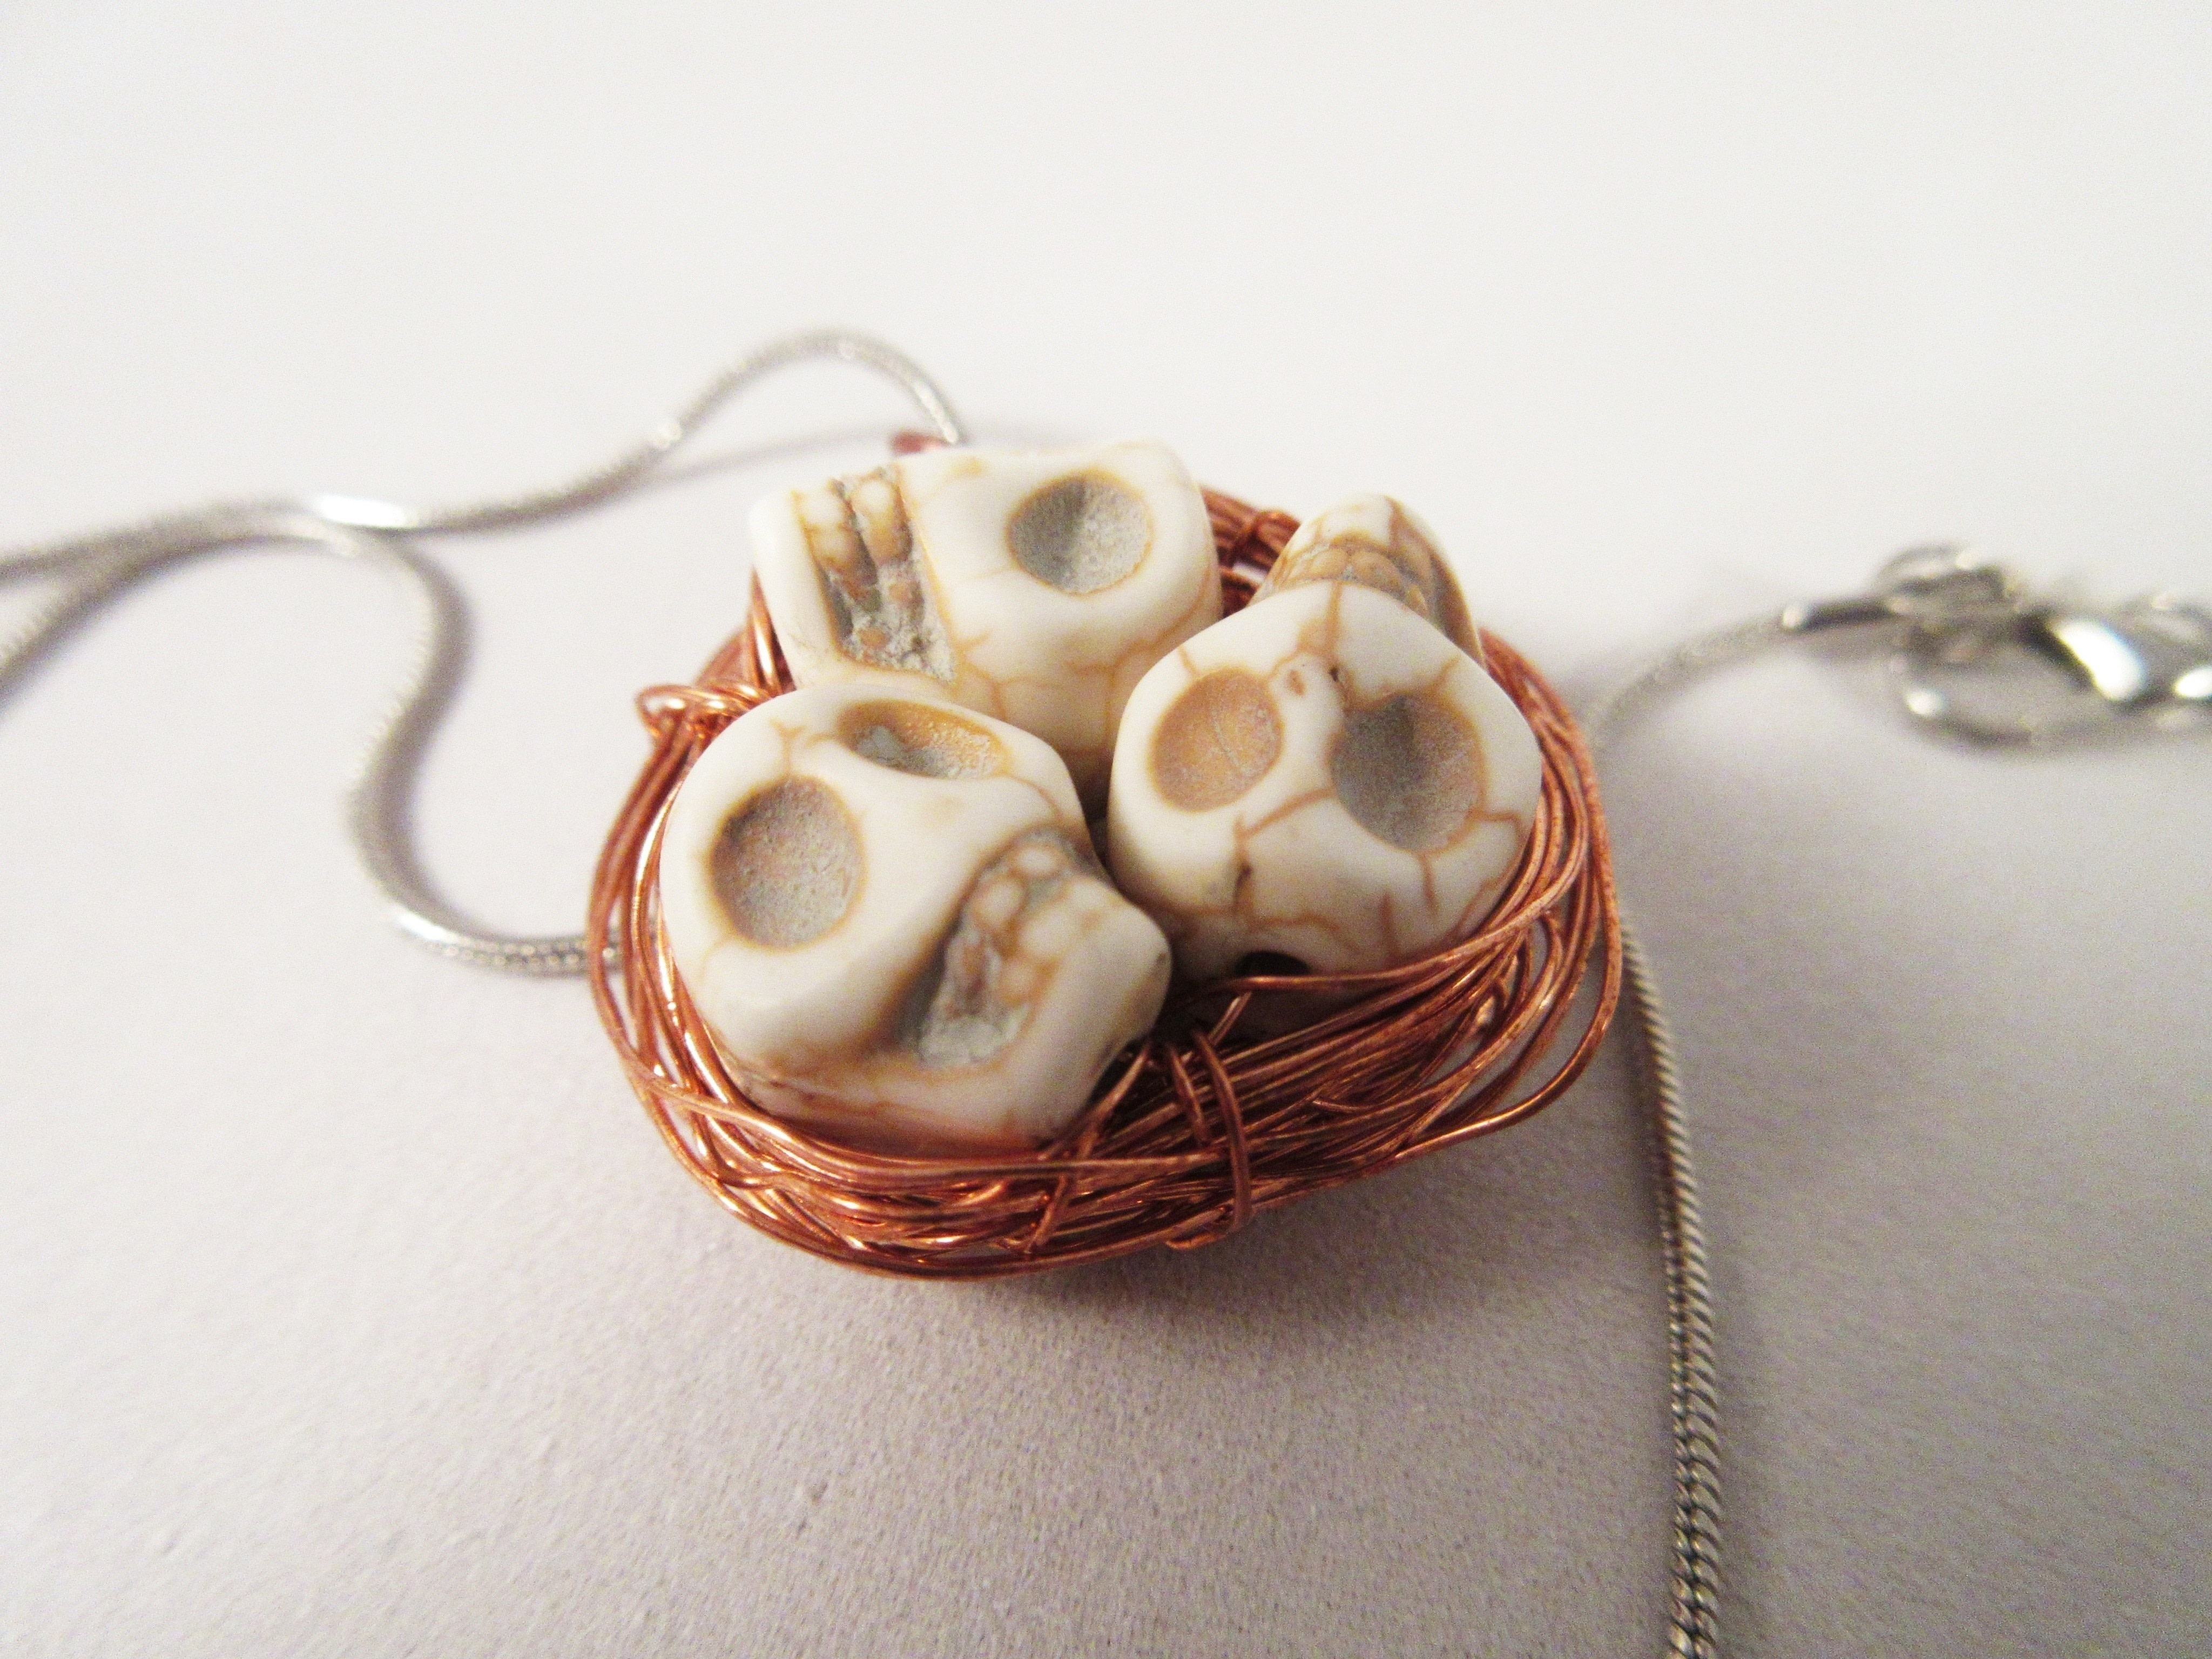 Skull birds nest pendant a skull pendant jewelry on cut out keep skull birds nest pendant next prev skull beads with copper wire make a skull pendant in under 30 minutes by wireworking aloadofball Choice Image